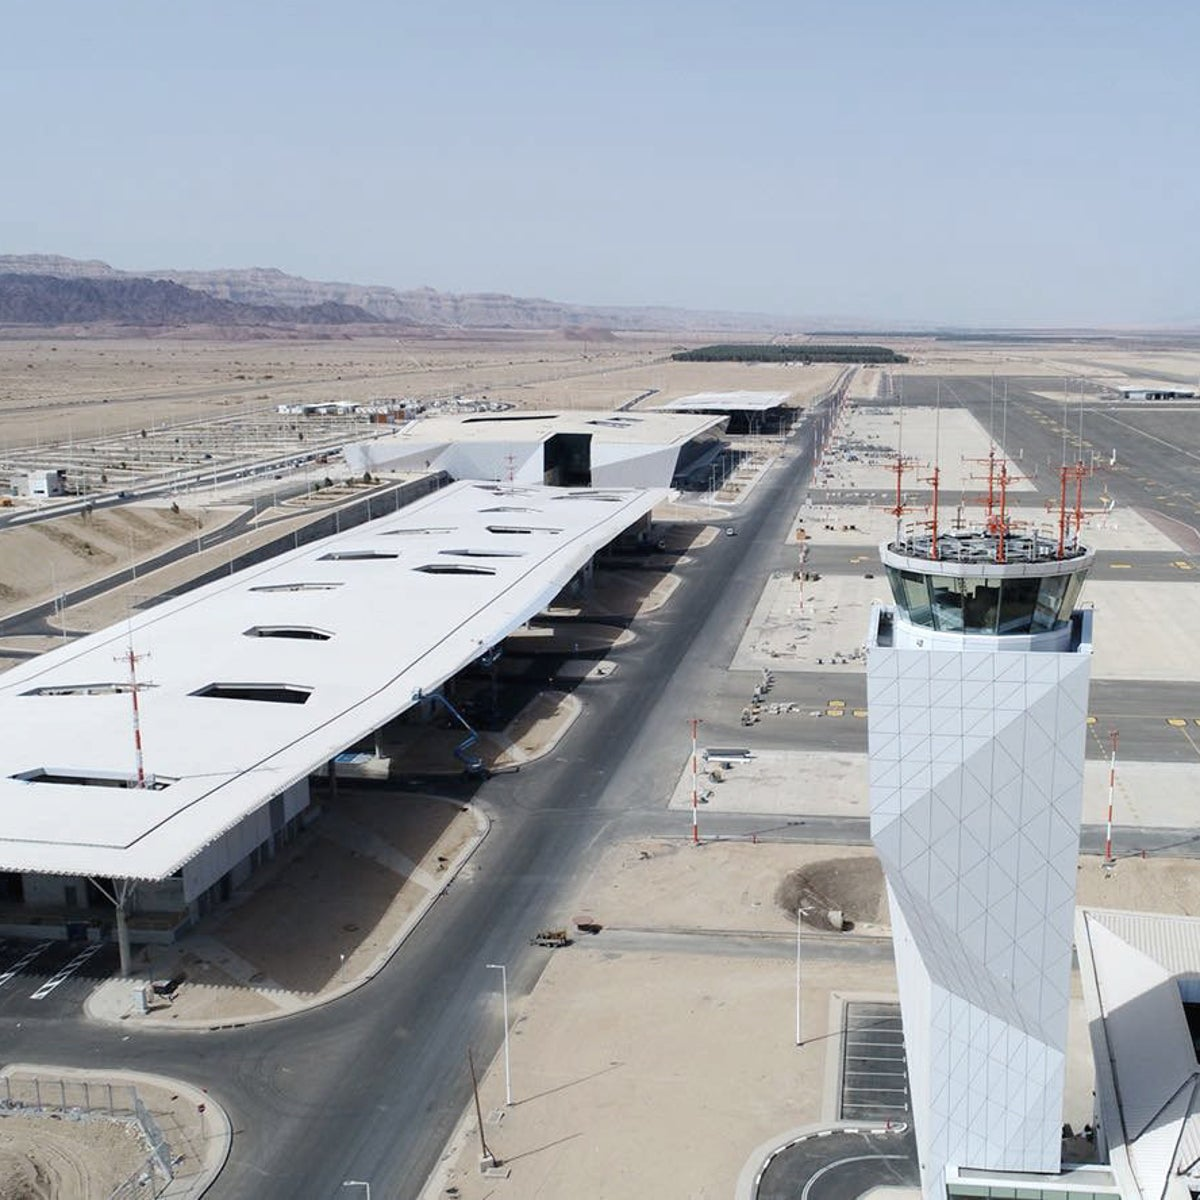 The Ramon Airport was built over the past five years at a cost of 1.75 billion shekels ($473.5 million)